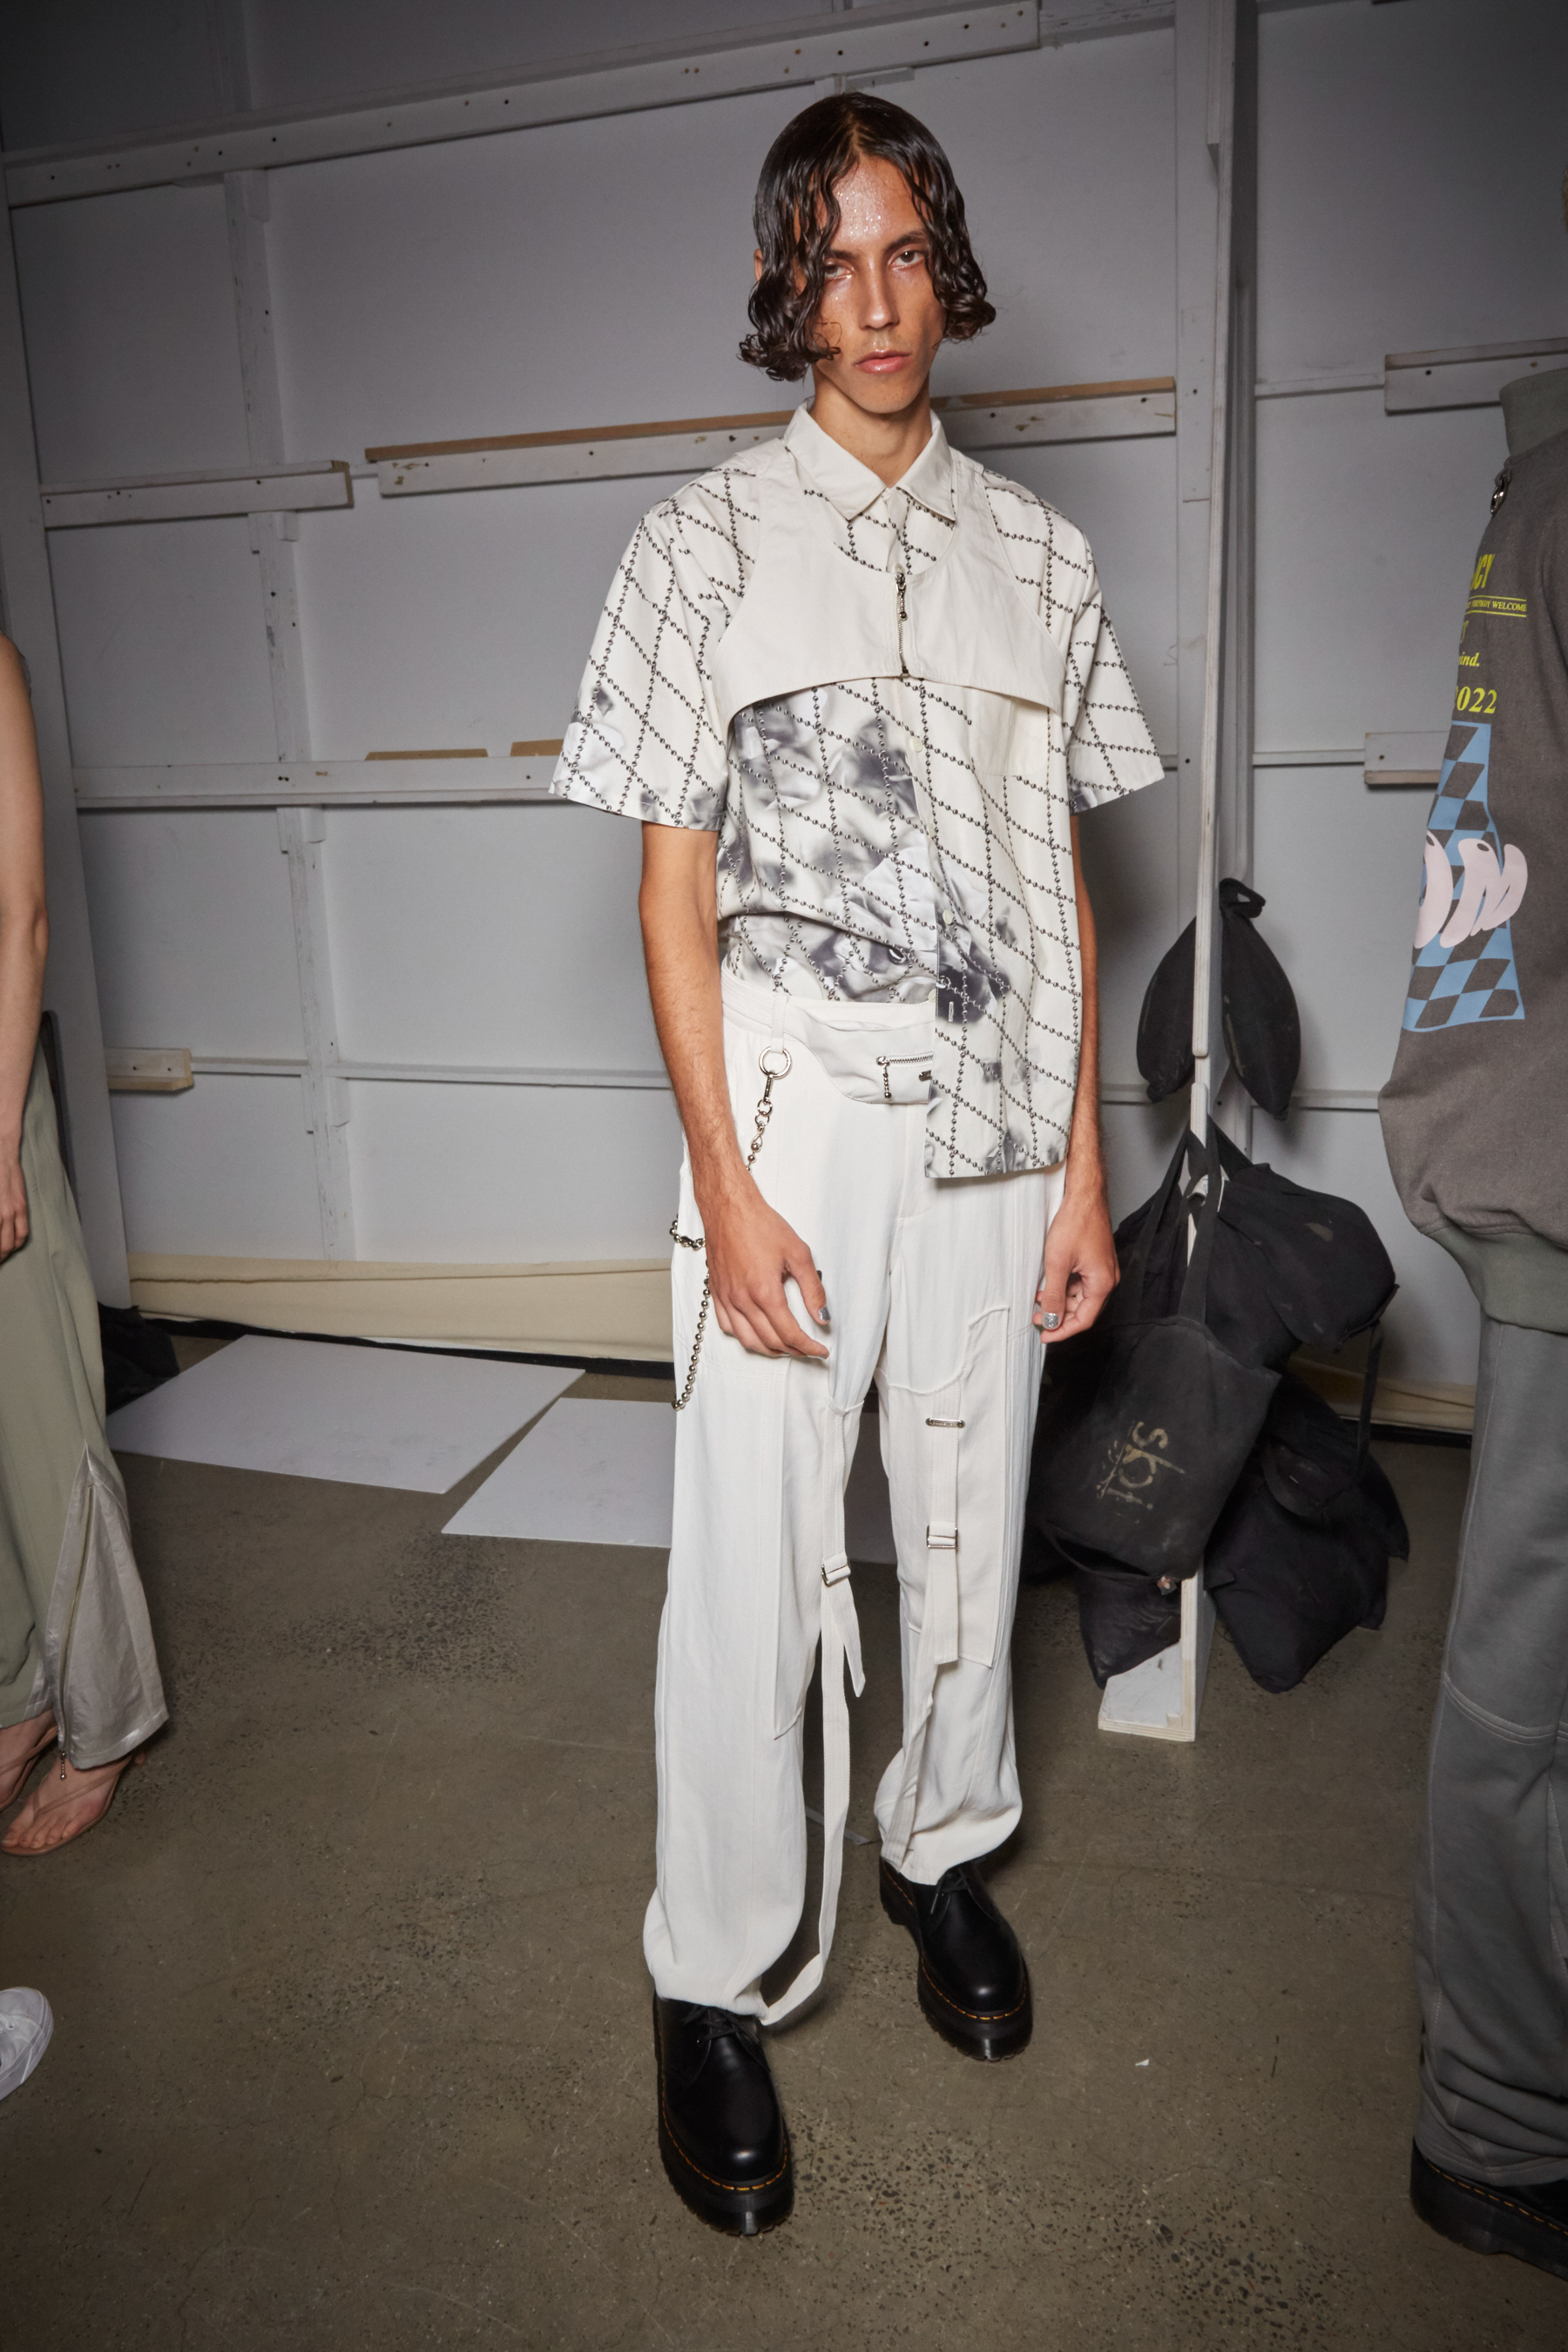 Private Policy Spring 2022 Backstage Fashion Show